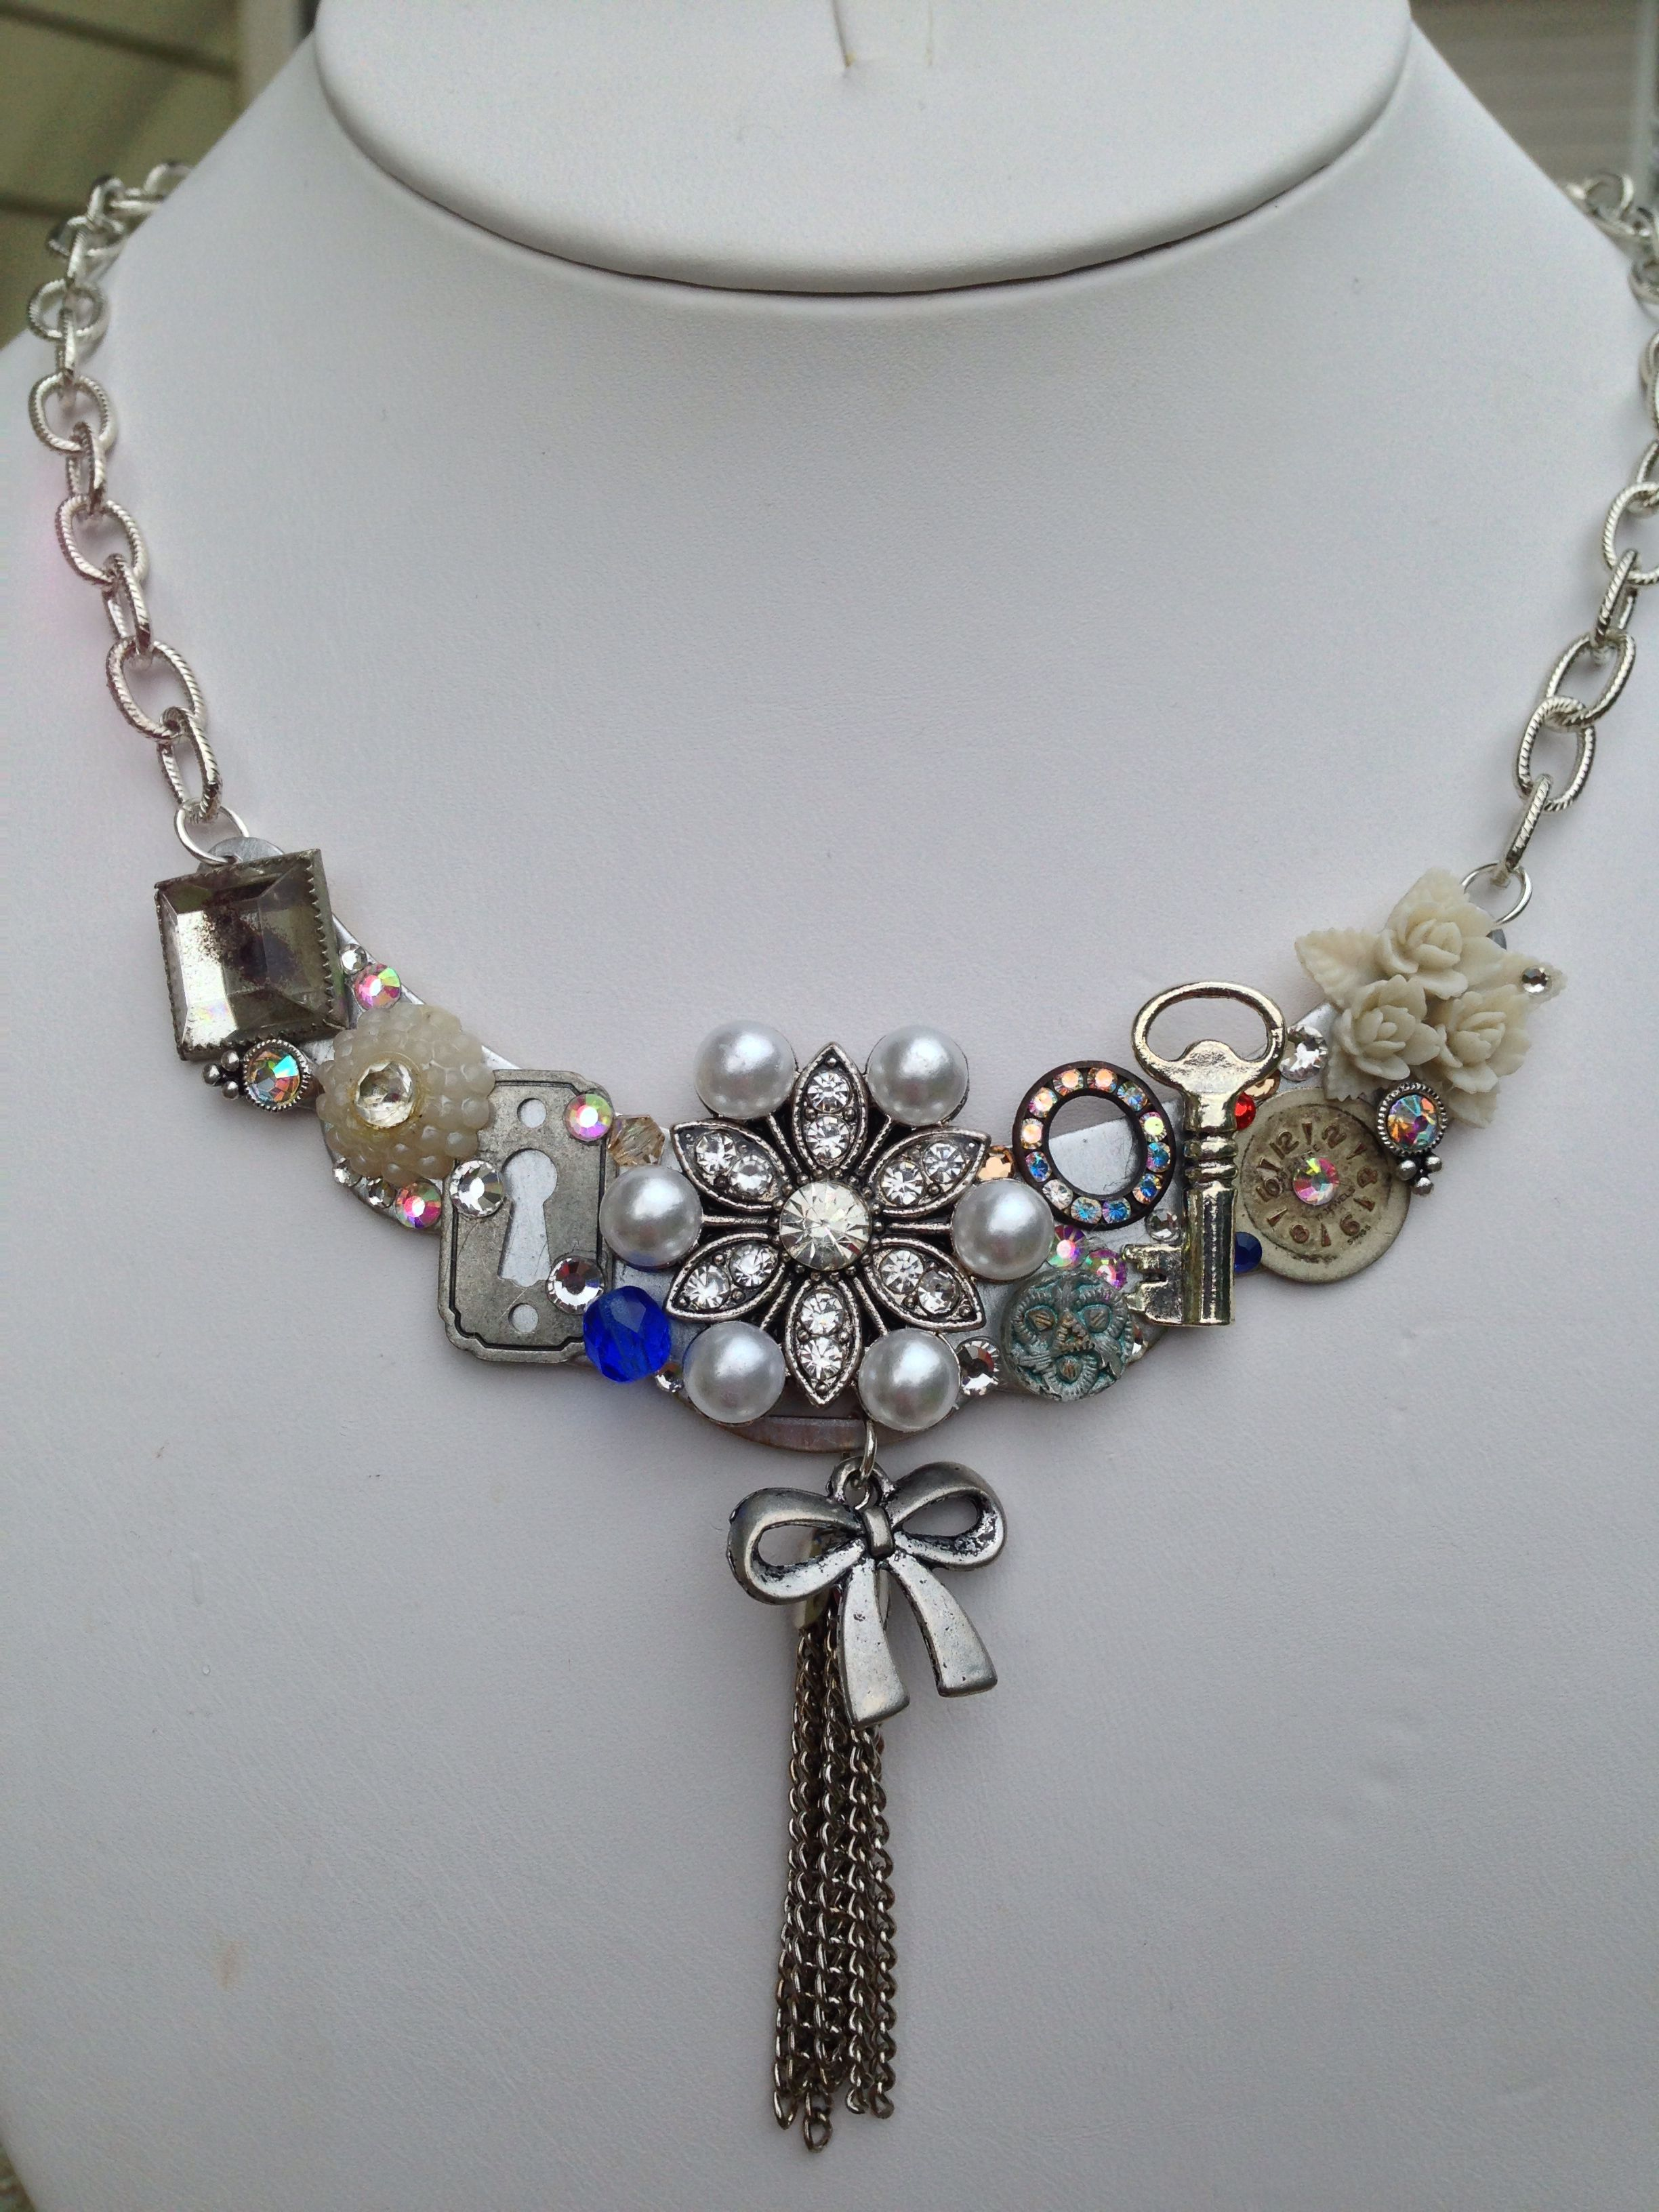 Silver base metal collage necklace made with vintage buttons and bits, charms and crystals by Wylene at Shady Lane Jewelry. $50 shadylanejewelry@yahoo.com